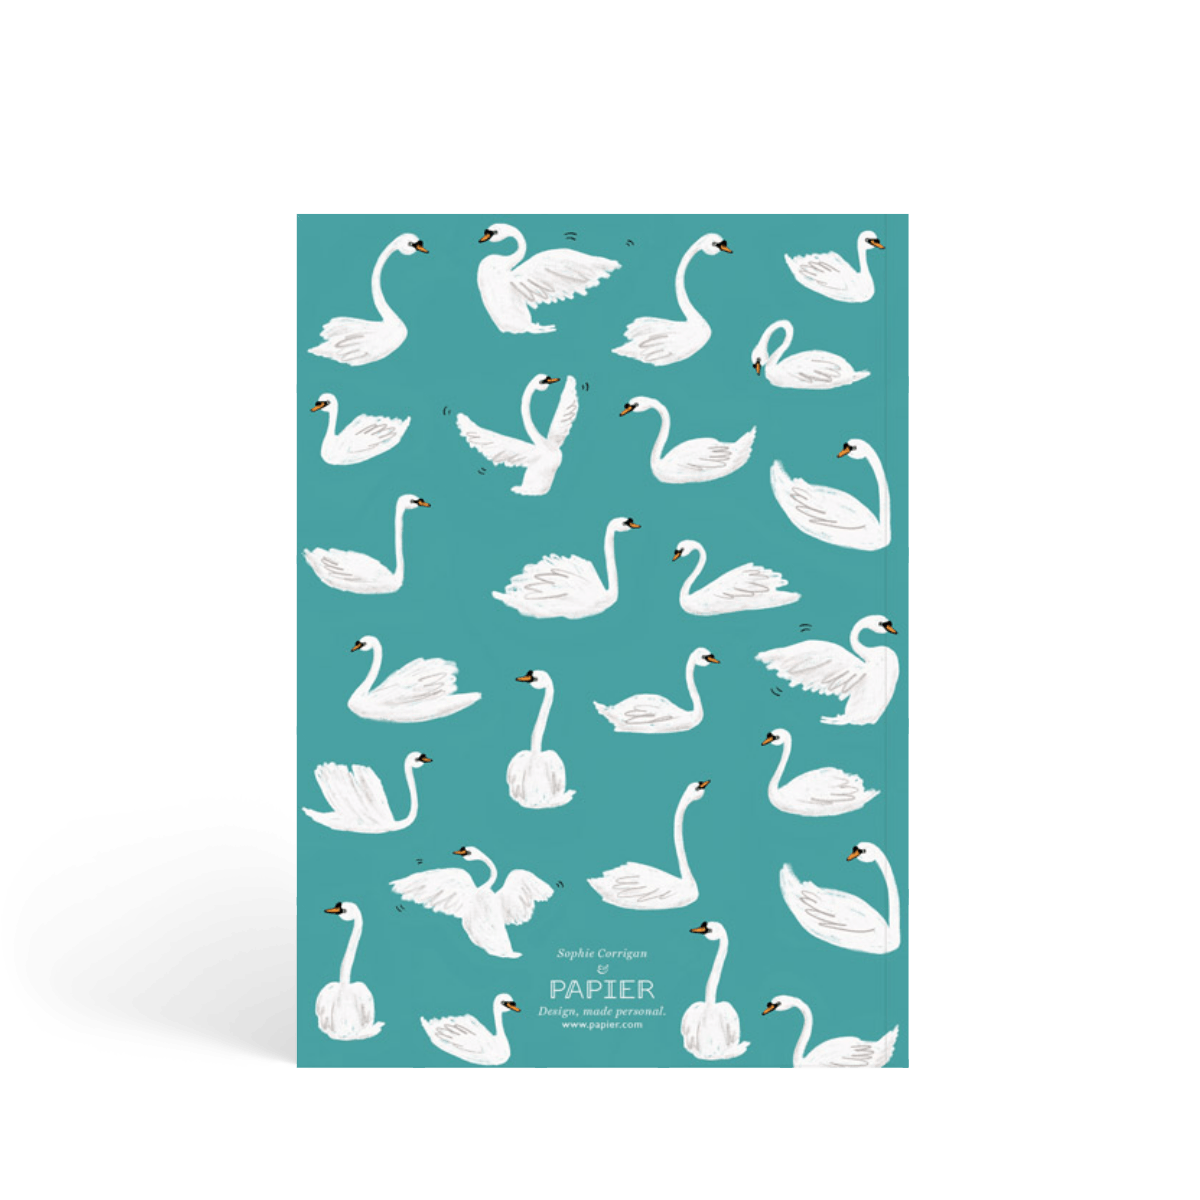 Https%3a%2f%2fwww.papier.com%2fproduct image%2f37603%2f5%2fblue swans 9495 back 1527696312.png?ixlib=rb 1.1